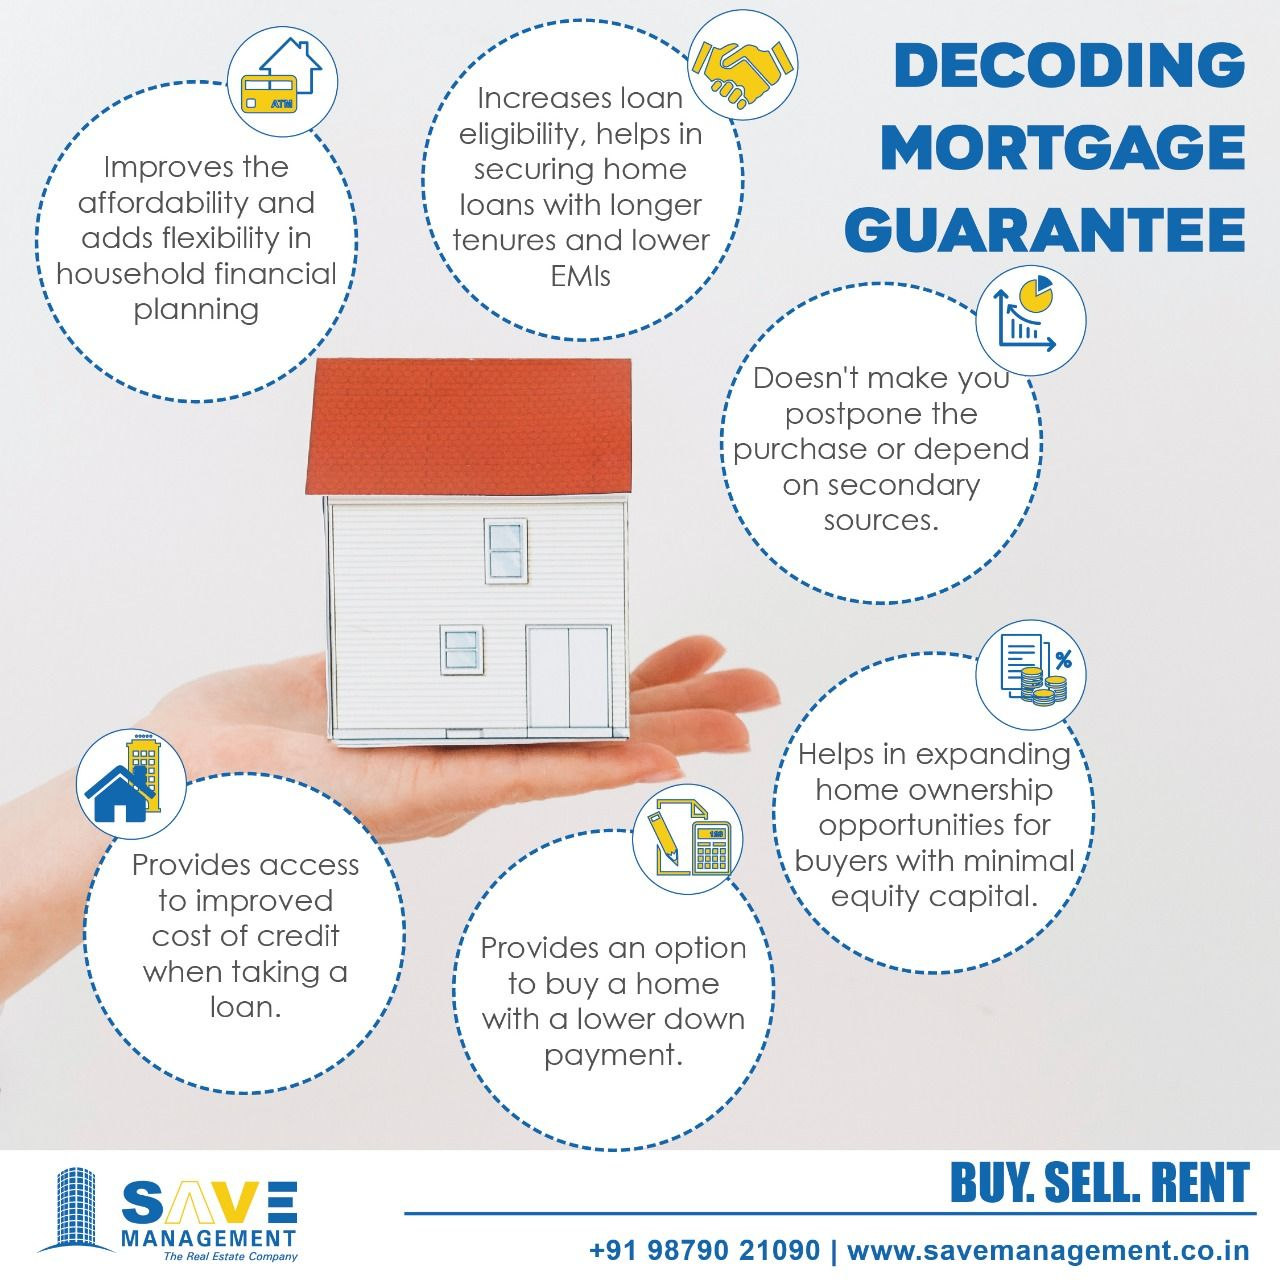 Mortgage Guarantee Is A Boost To Home Loan Lenders It Provides A Backstop Arrangement For Home Loan L Real Estate Management Commercial Property Mortgage Tips